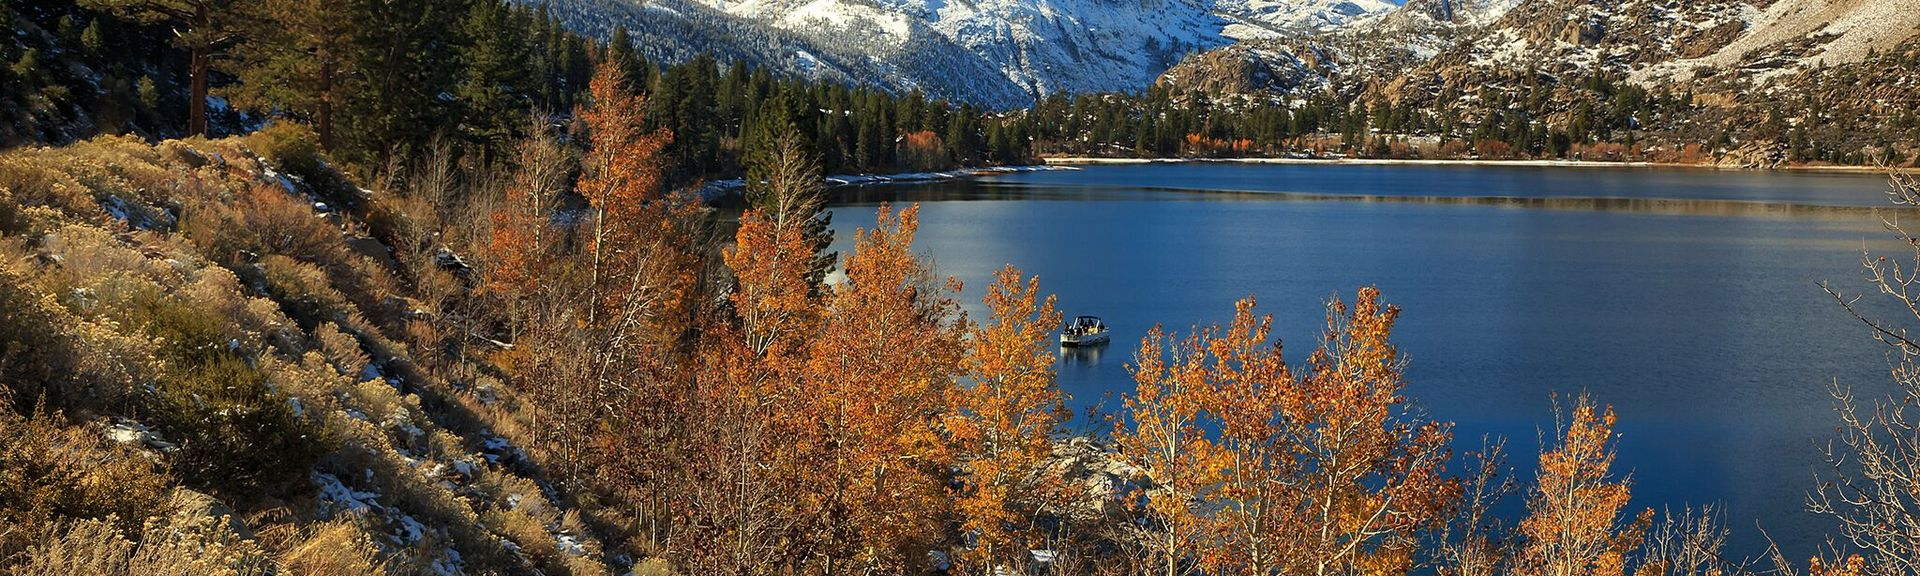 June Lake, Californië, Verenigde Staten